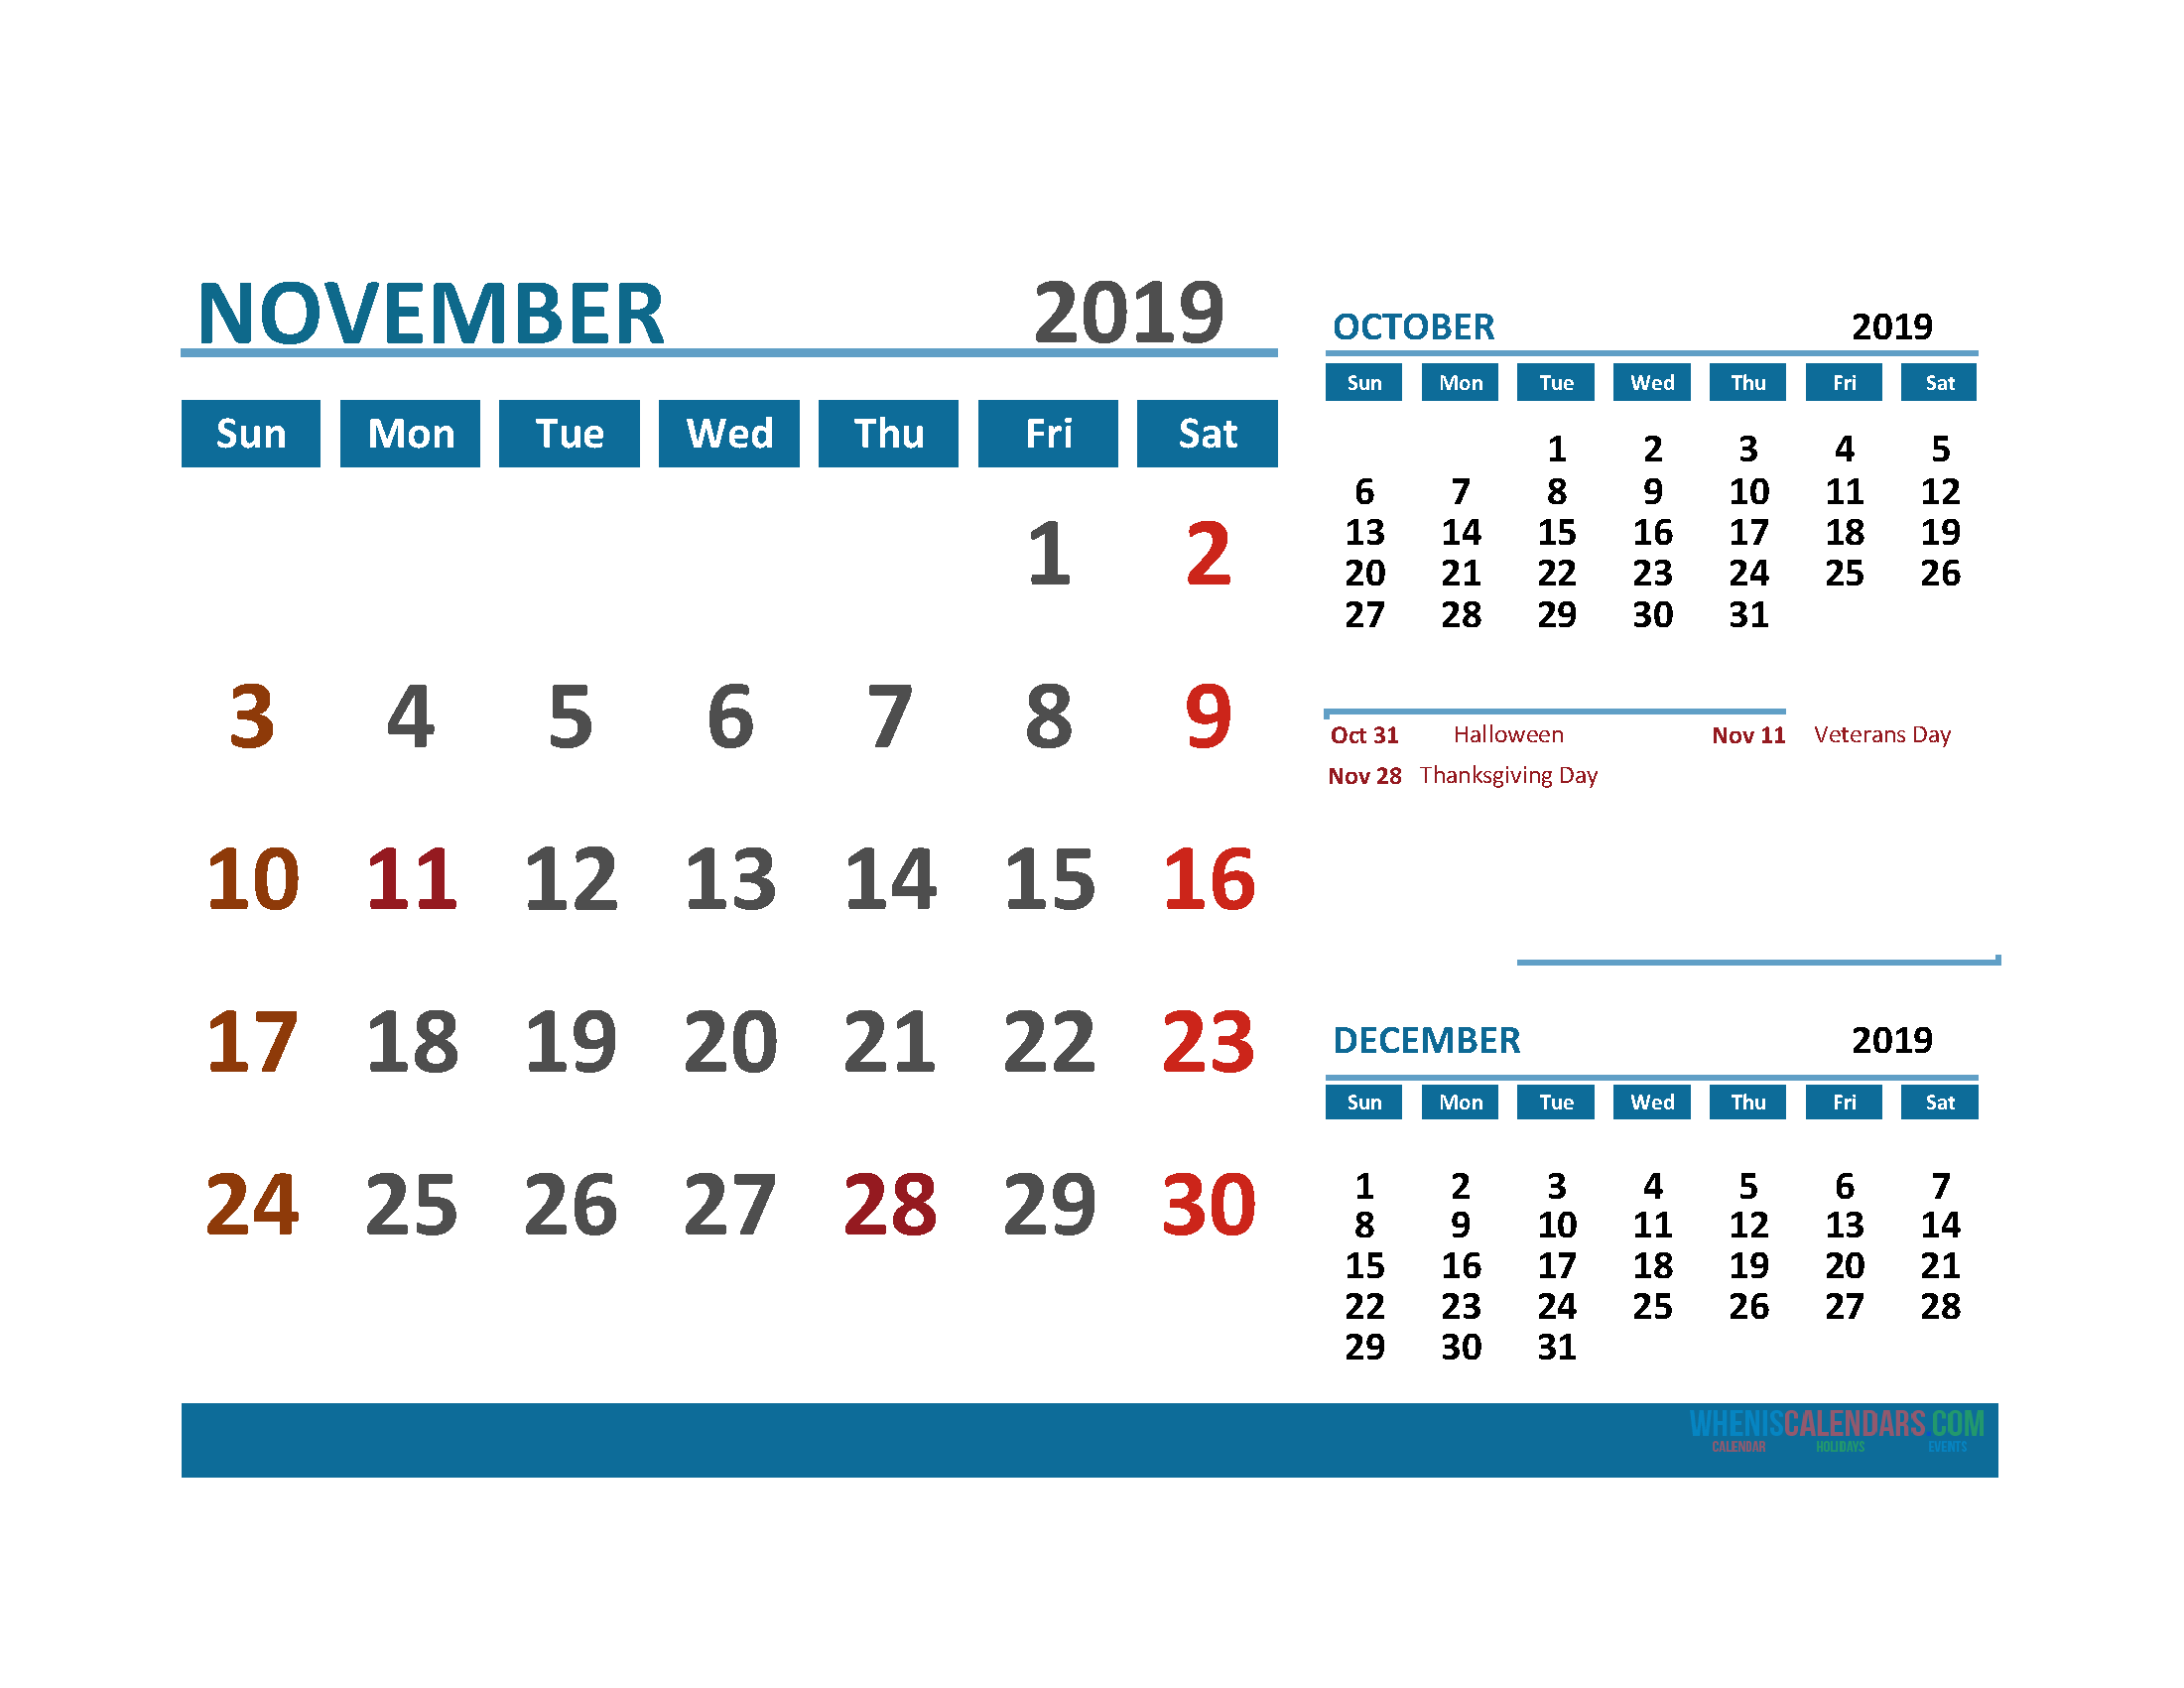 Printable Calendar November 2019 with Holidays 1 Month on 1 Page. October November December 3 Month Calendar 2019